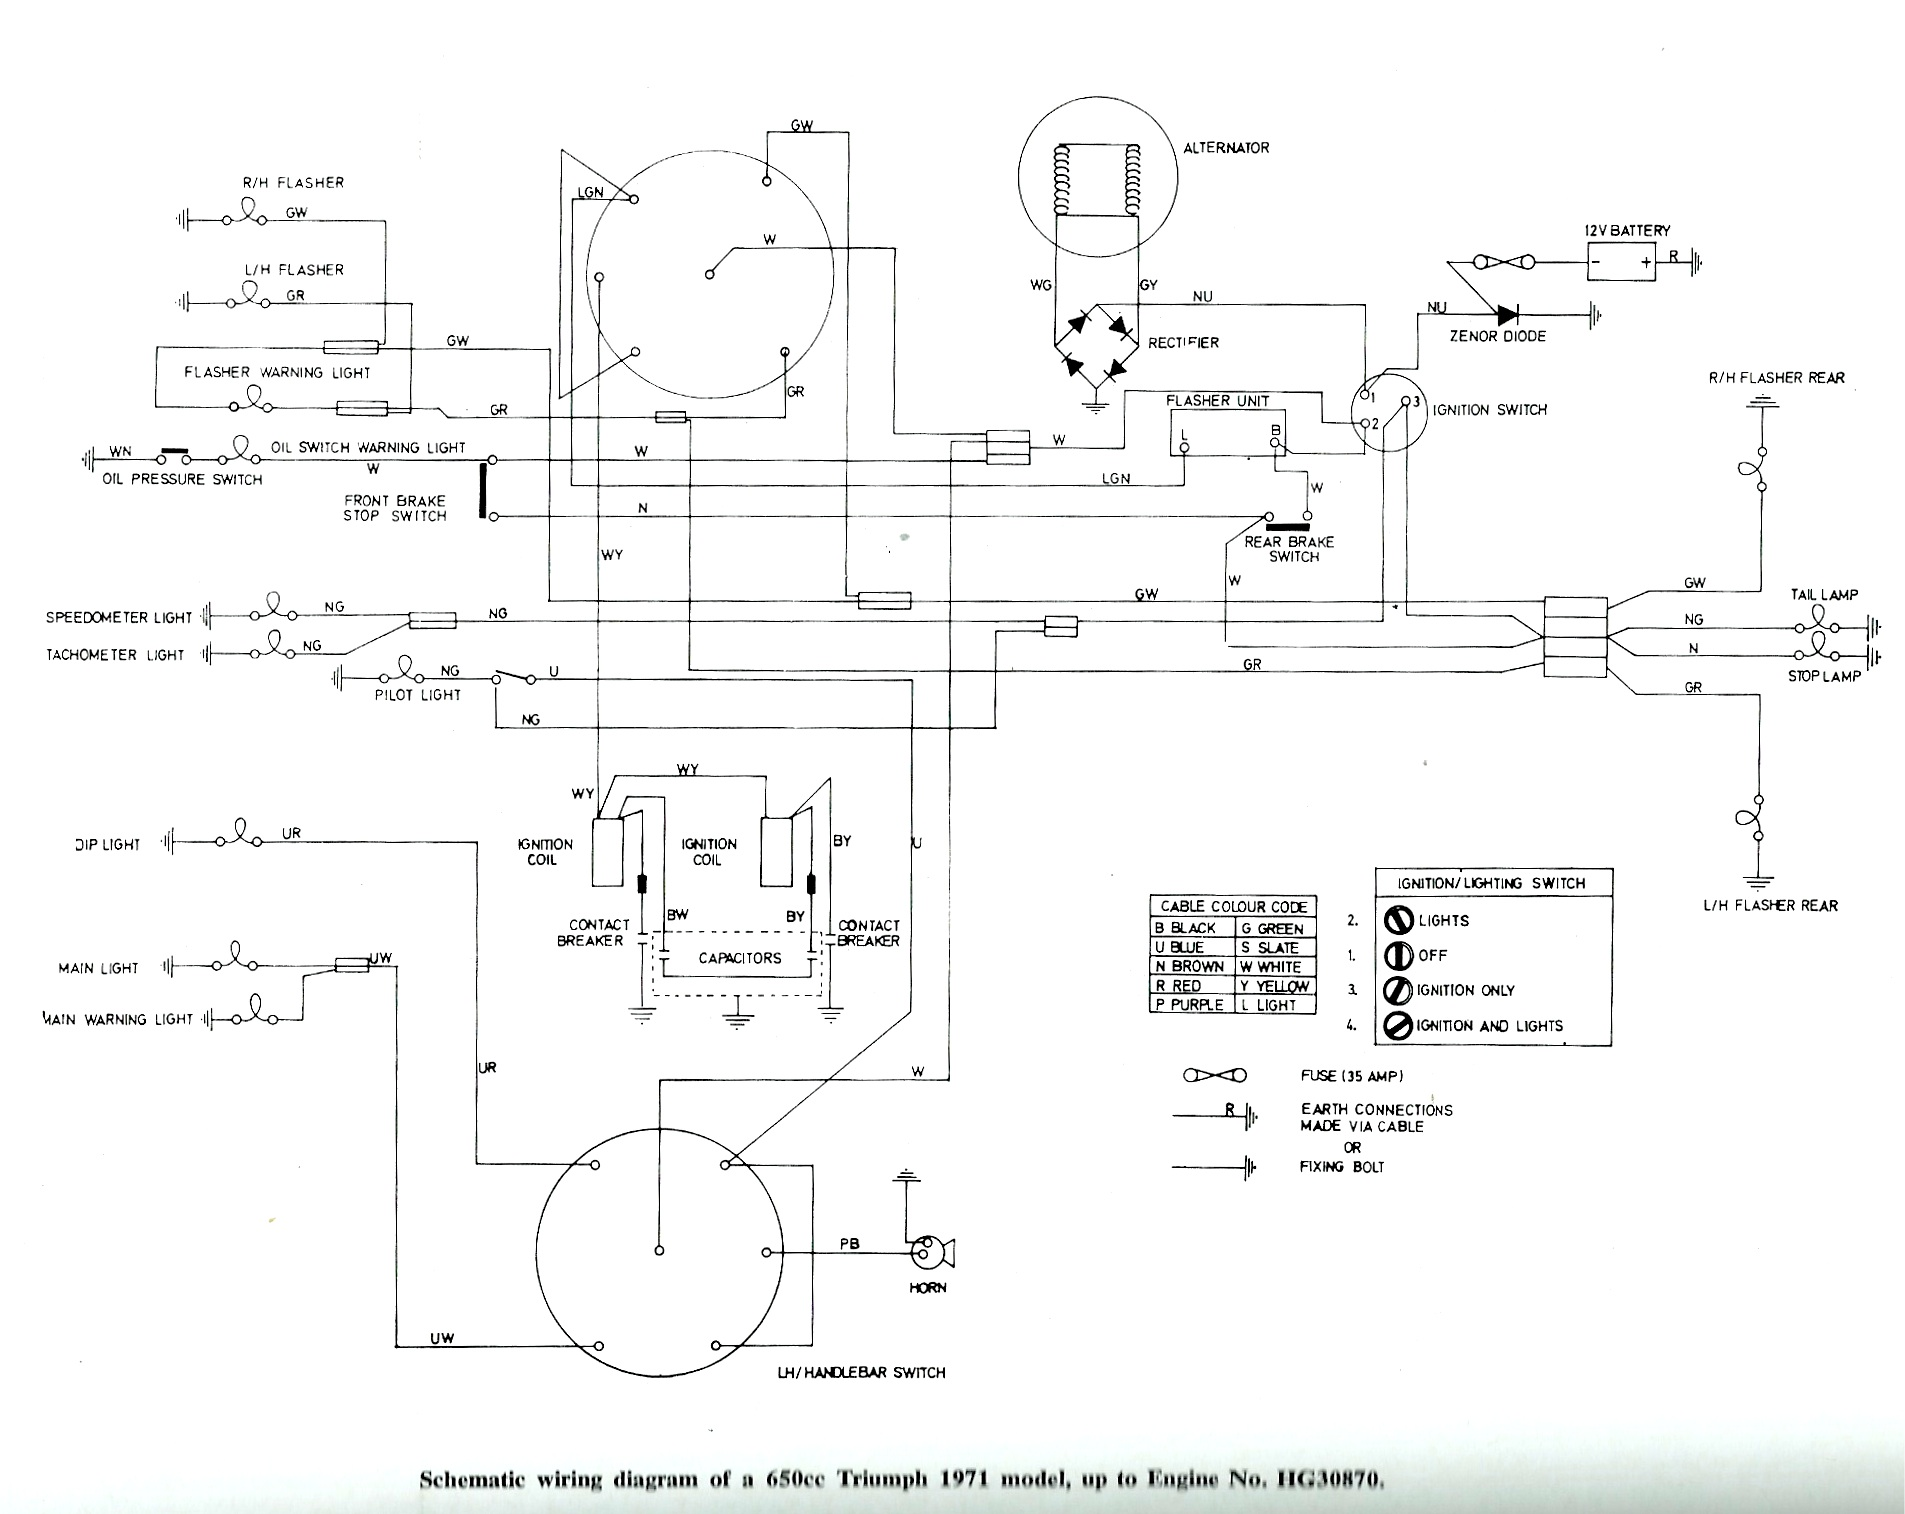 Wiring 2 2 71 triumph motorcycle wiring diagram diagram wiring diagrams for BSA Motorcycle Wiring Diagrams at reclaimingppi.co